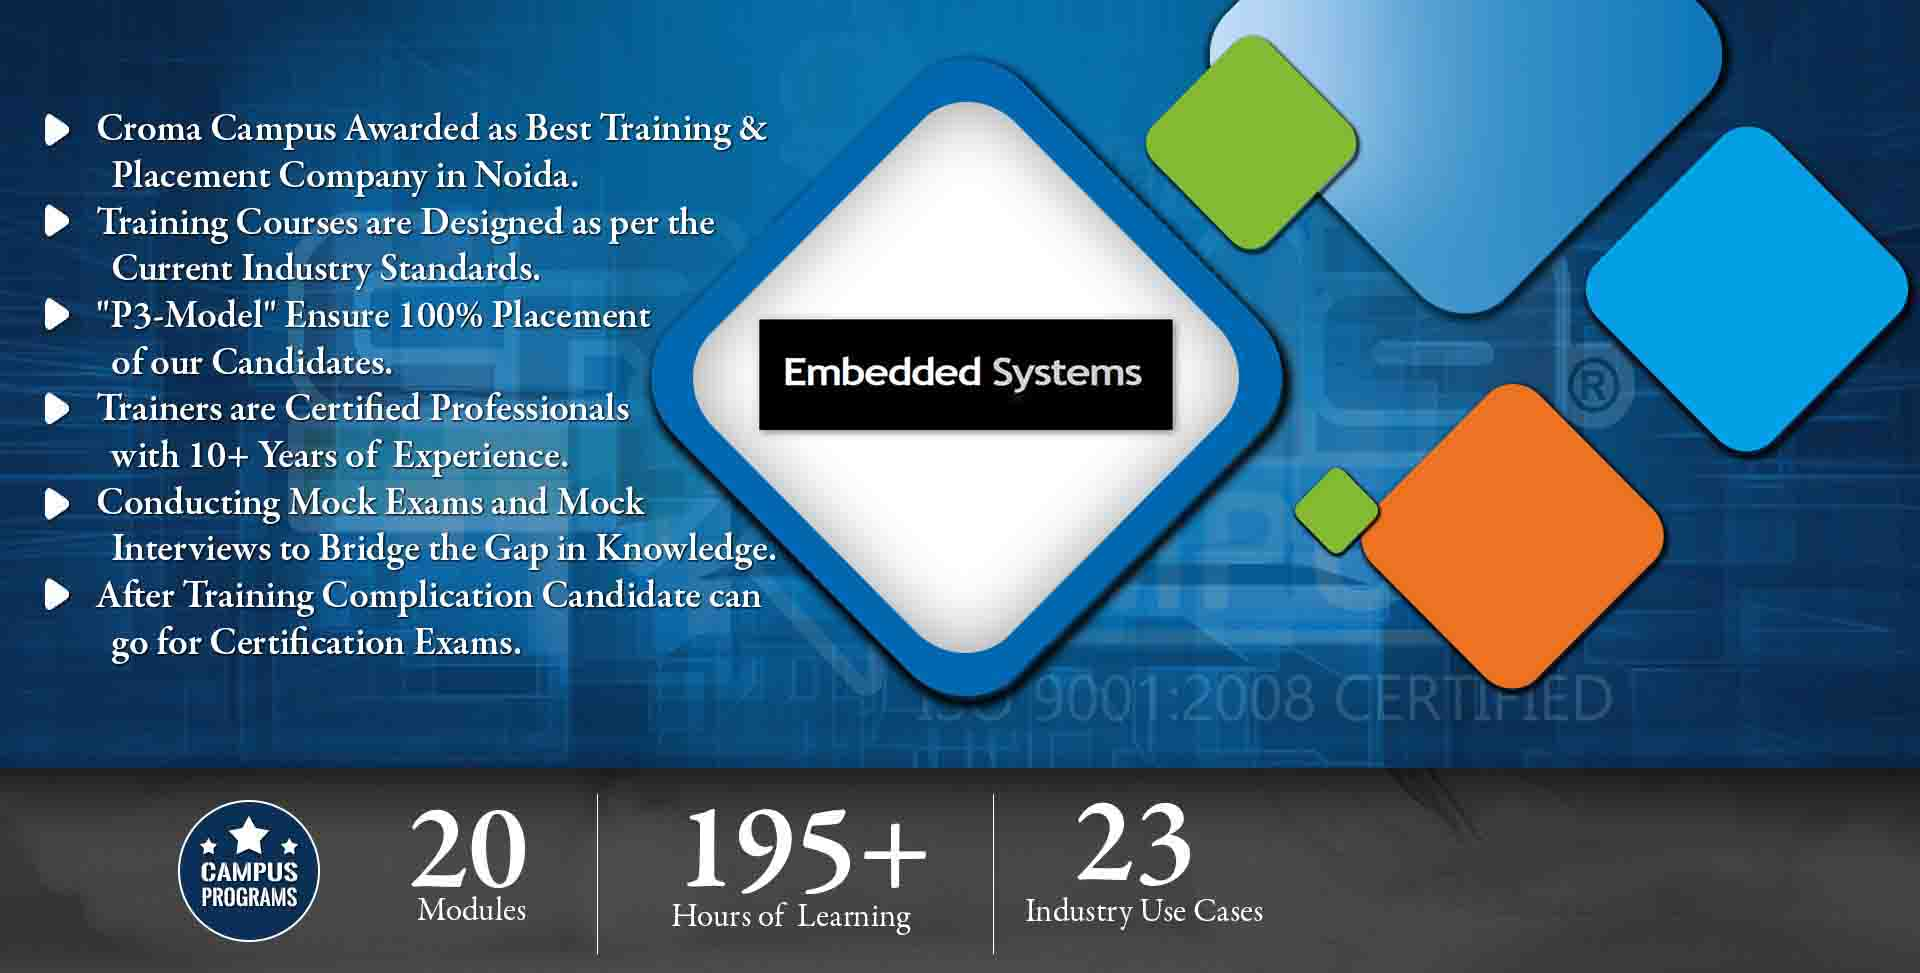 Embedded Systems Training in Noida- Croma Campus